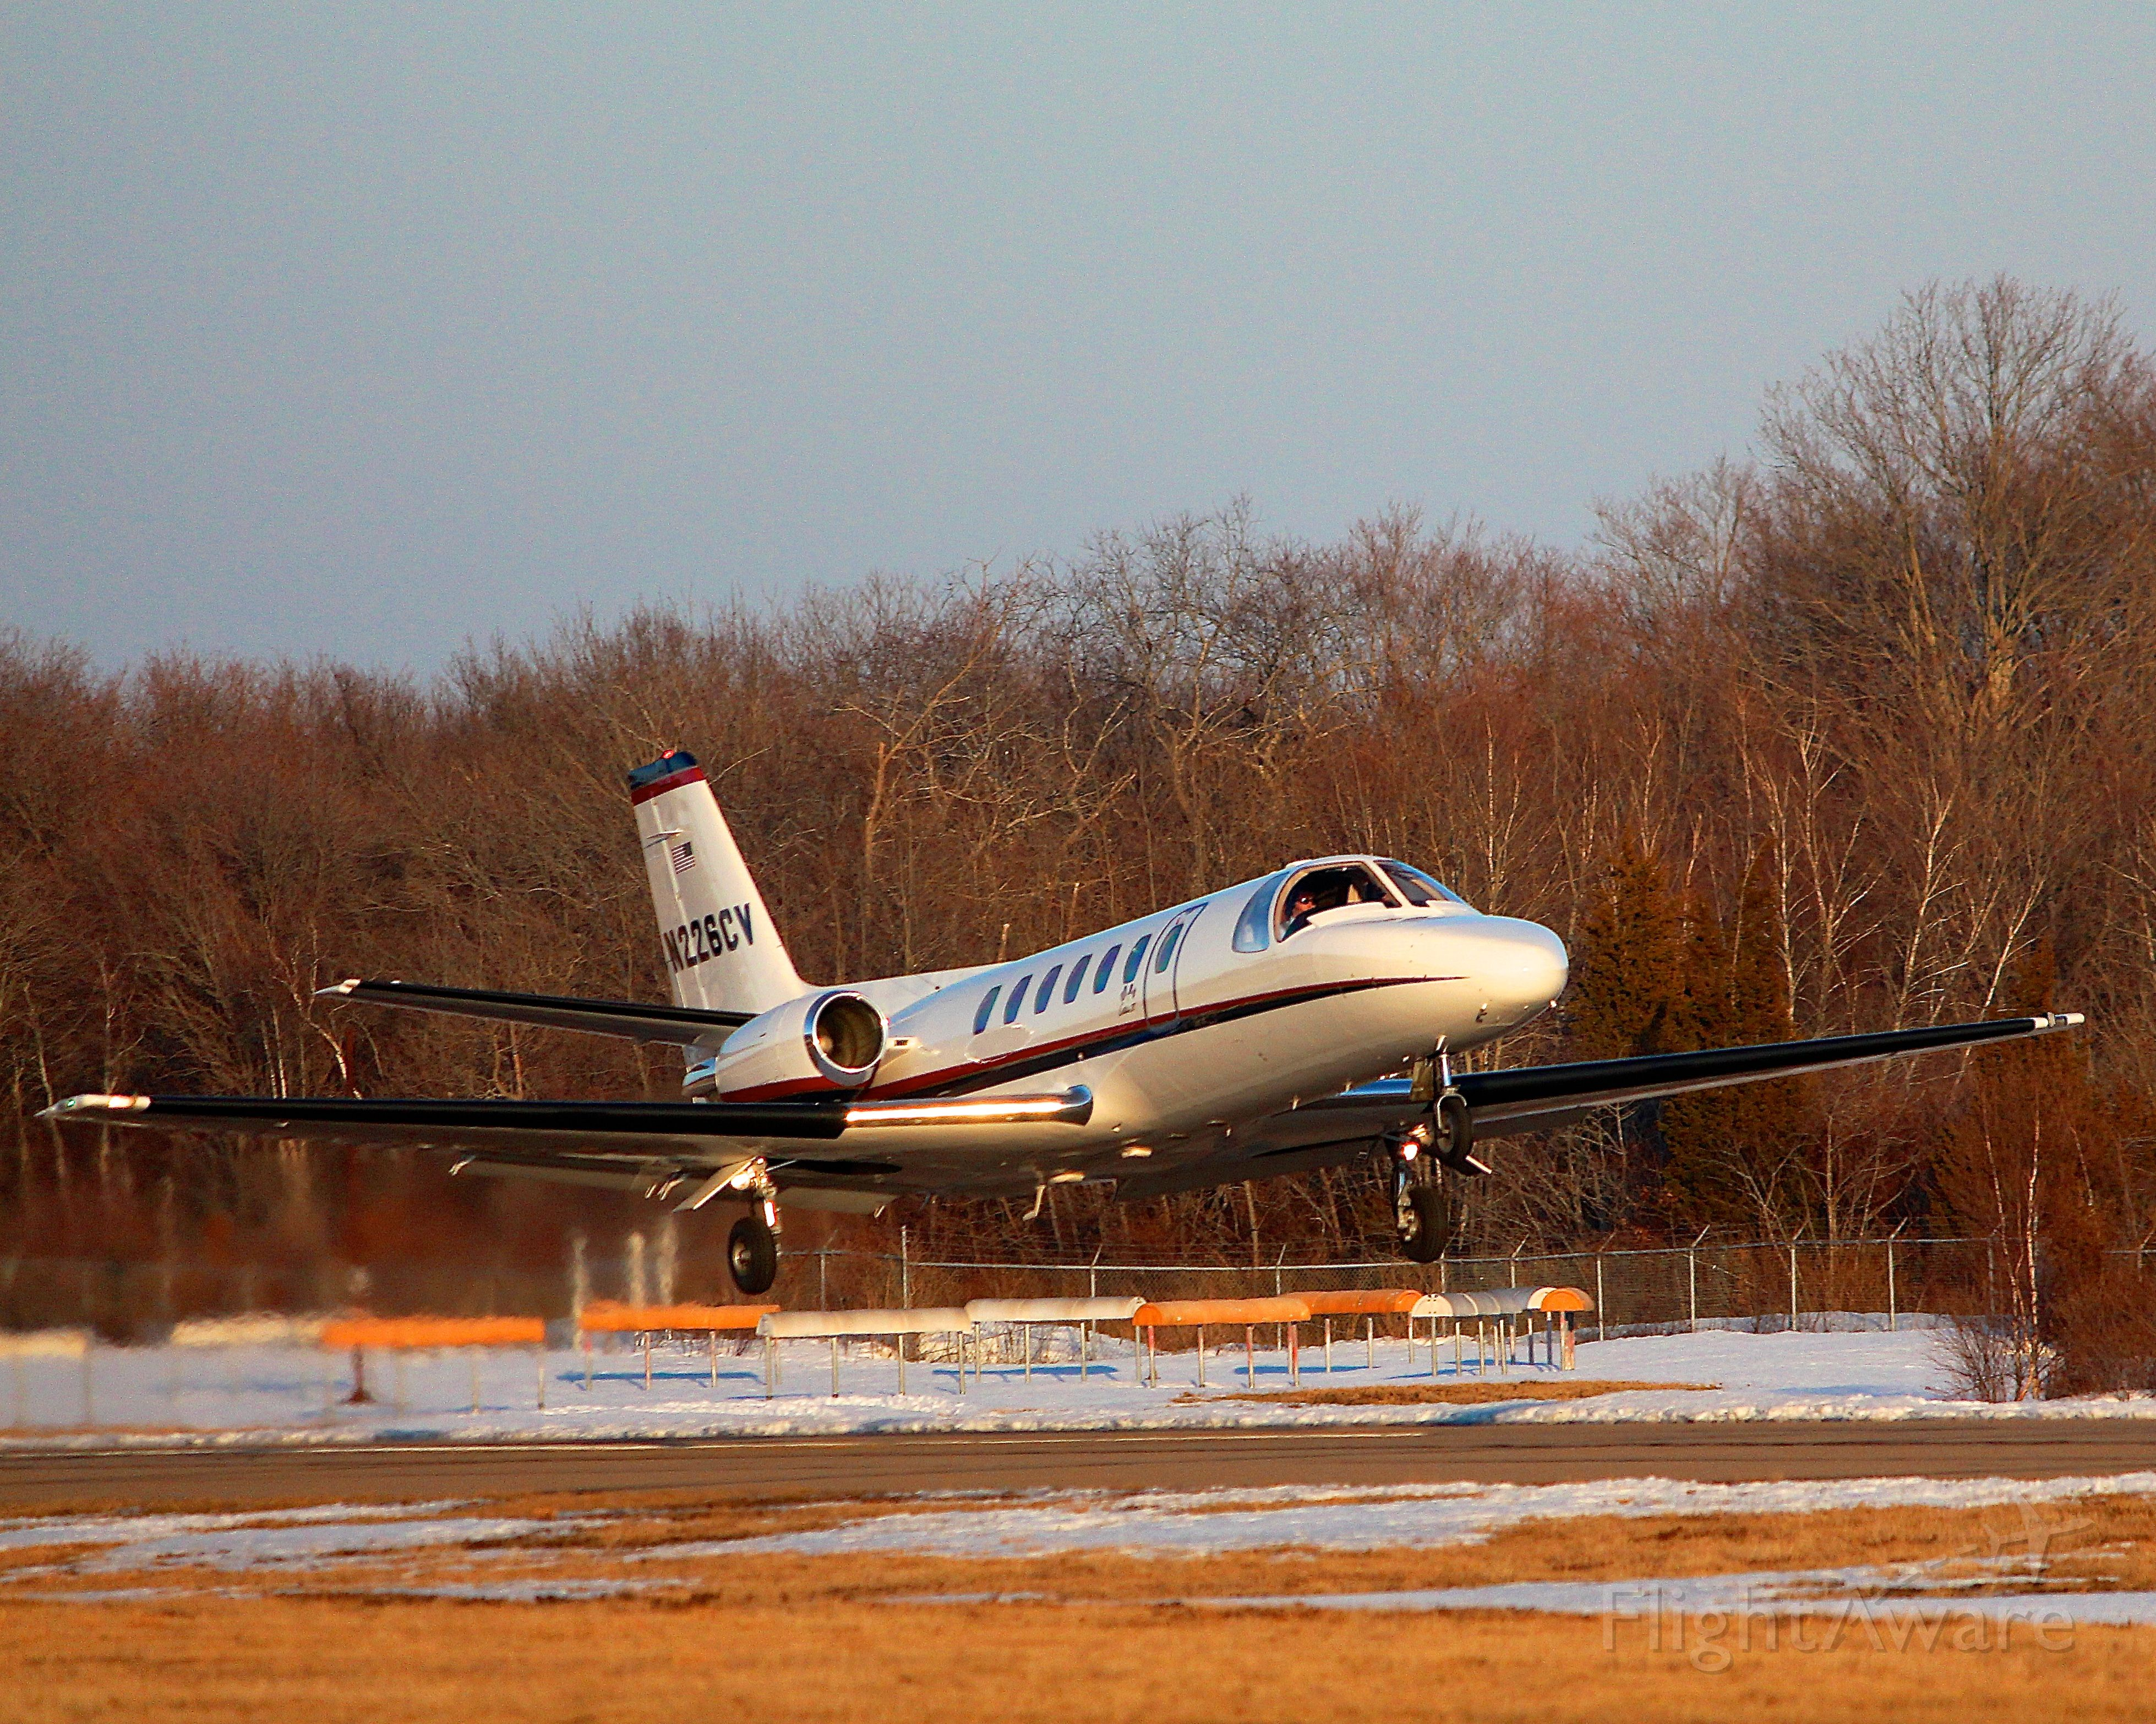 Cessna Citation II (N226CV) - Takeoff of one of the Shoreline Aviation charter planes from RWY 24.